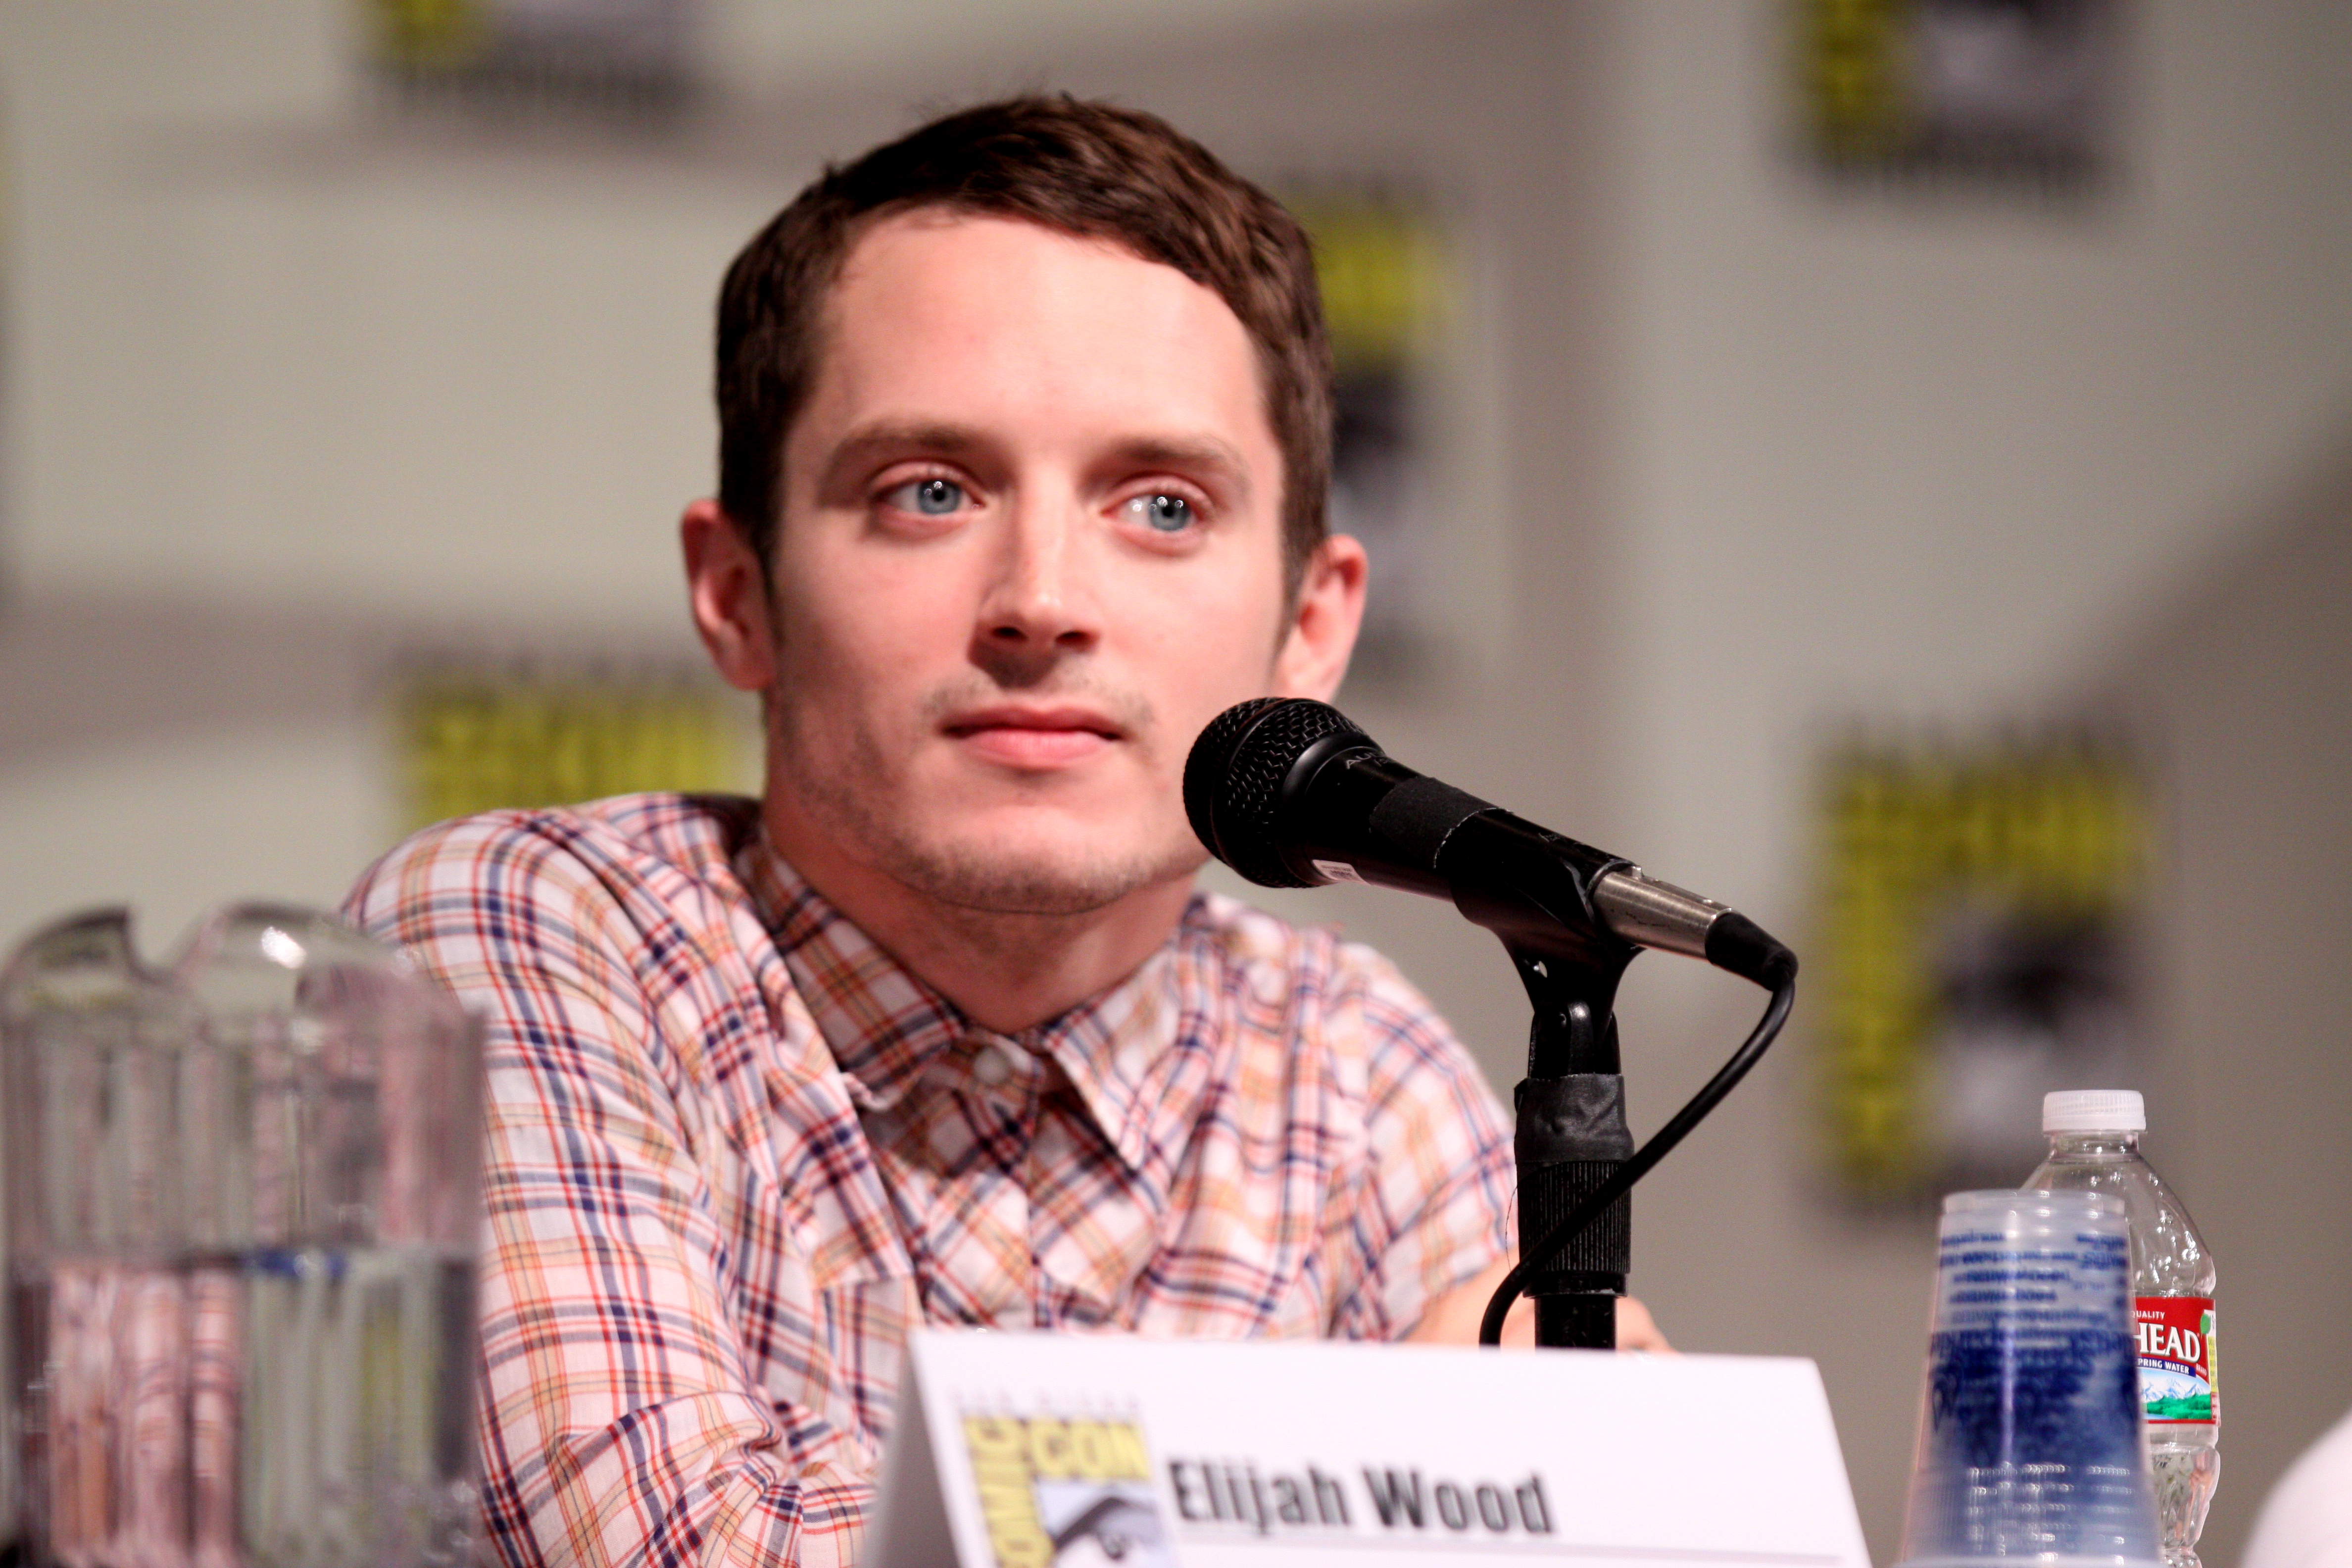 Elijah woods x jamie fine open up about life after ain't easy